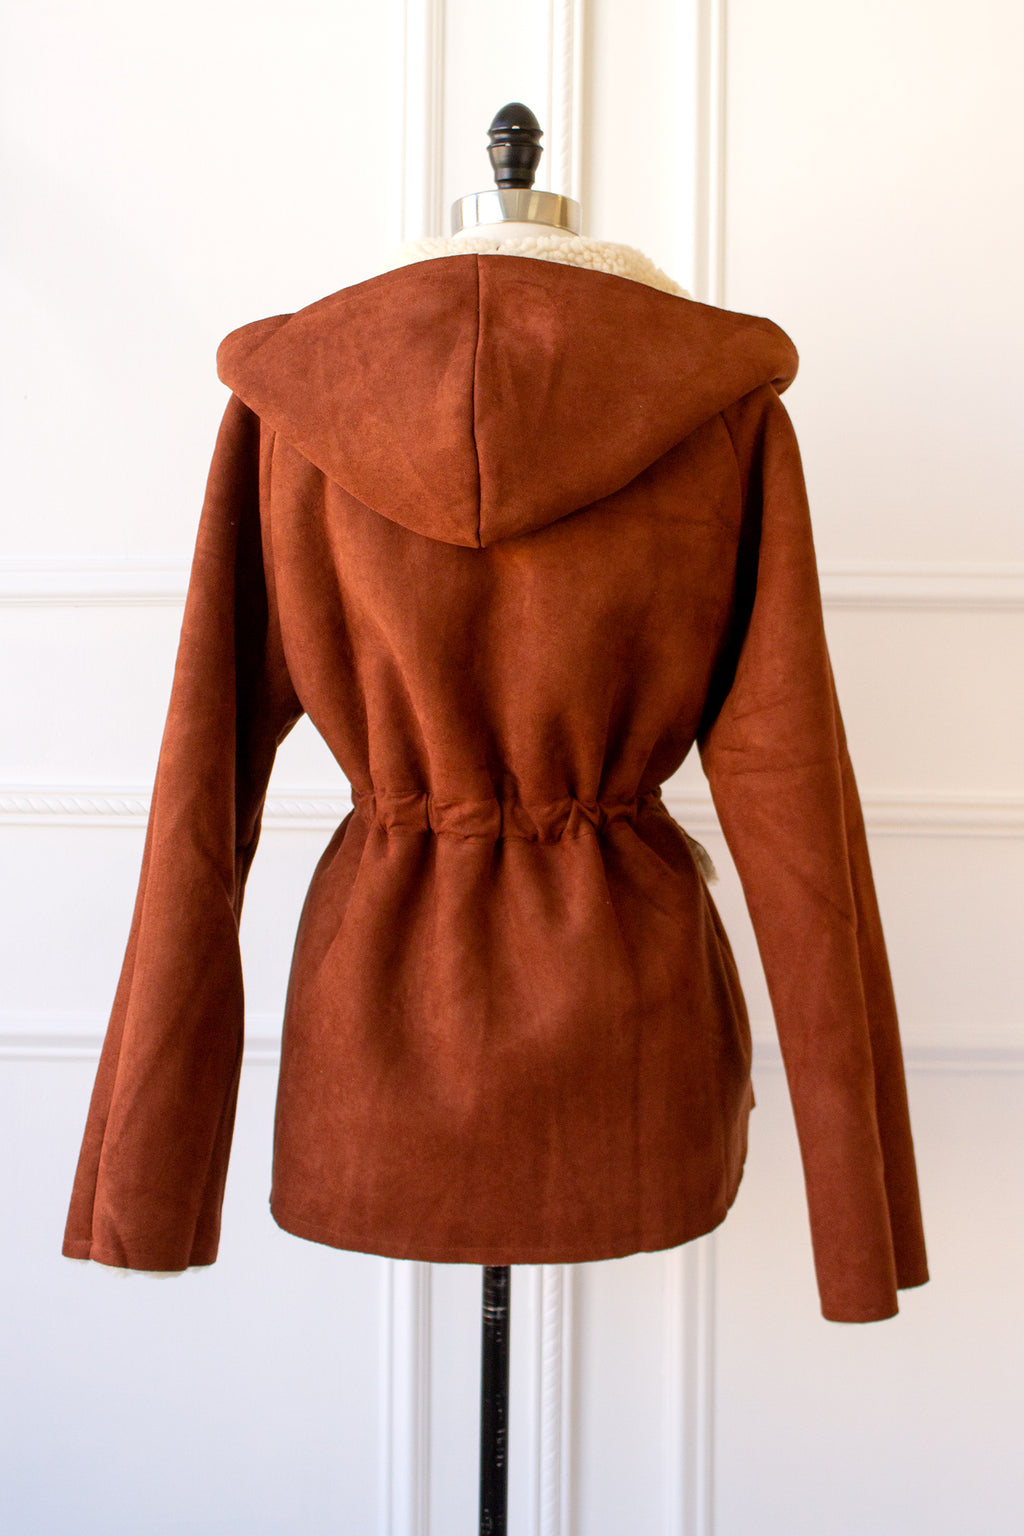 Hooded Jacket in rust faux suede and lined in sherpa